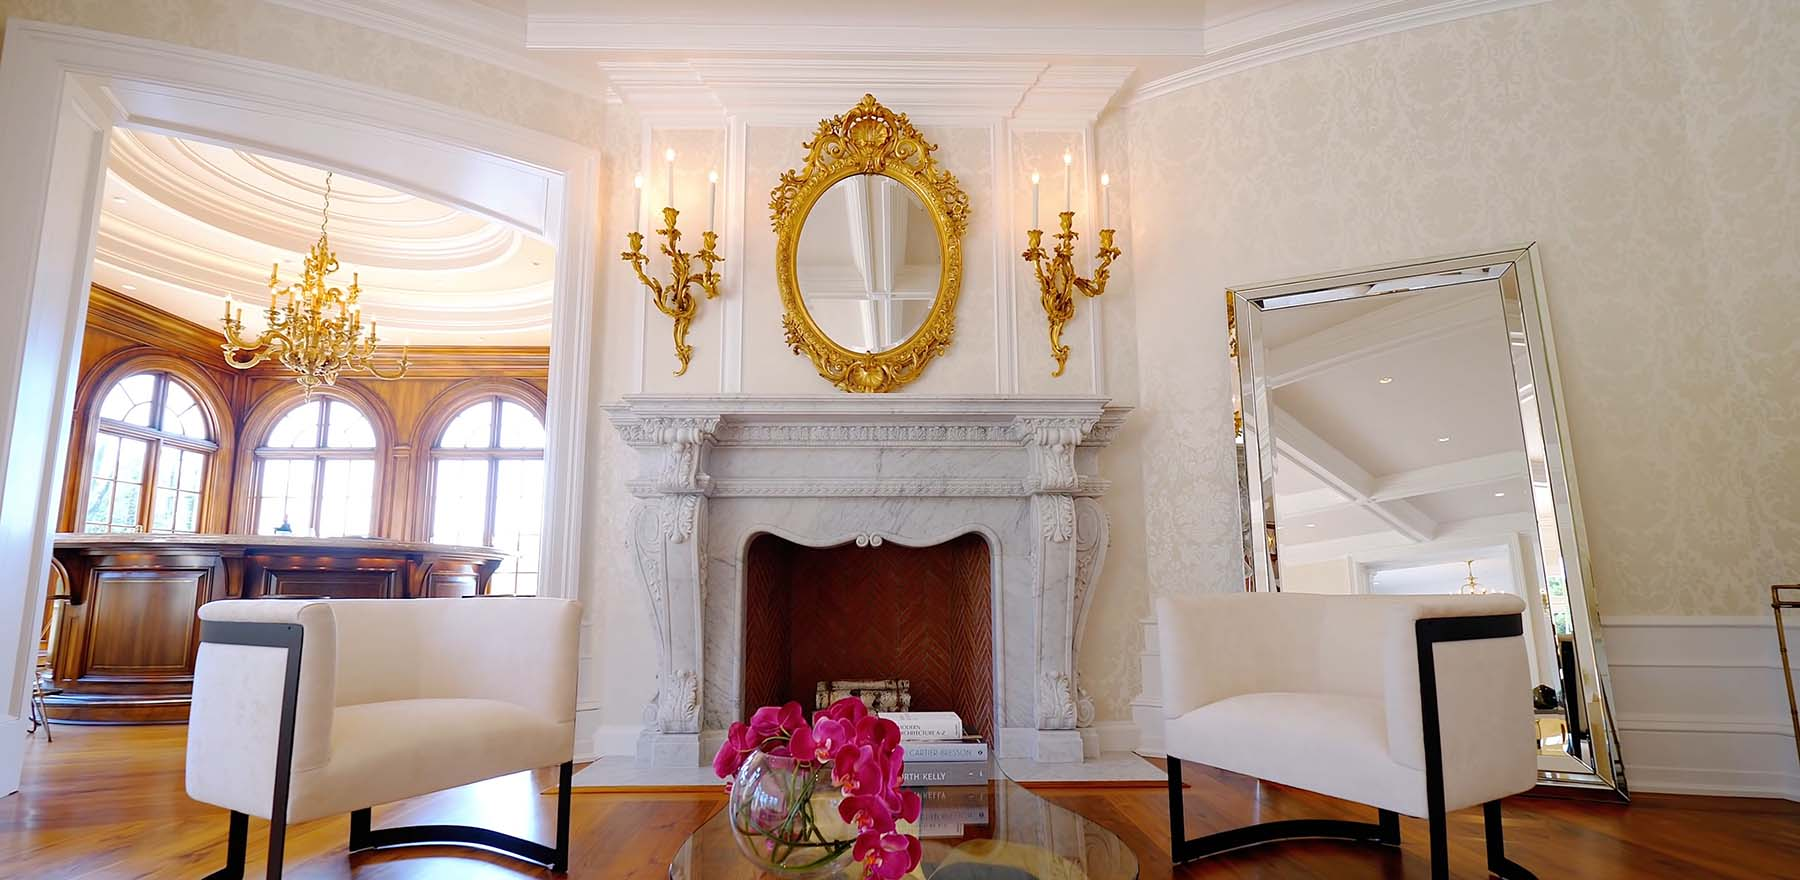 carved marble fireplace surround in a french inspried mansion